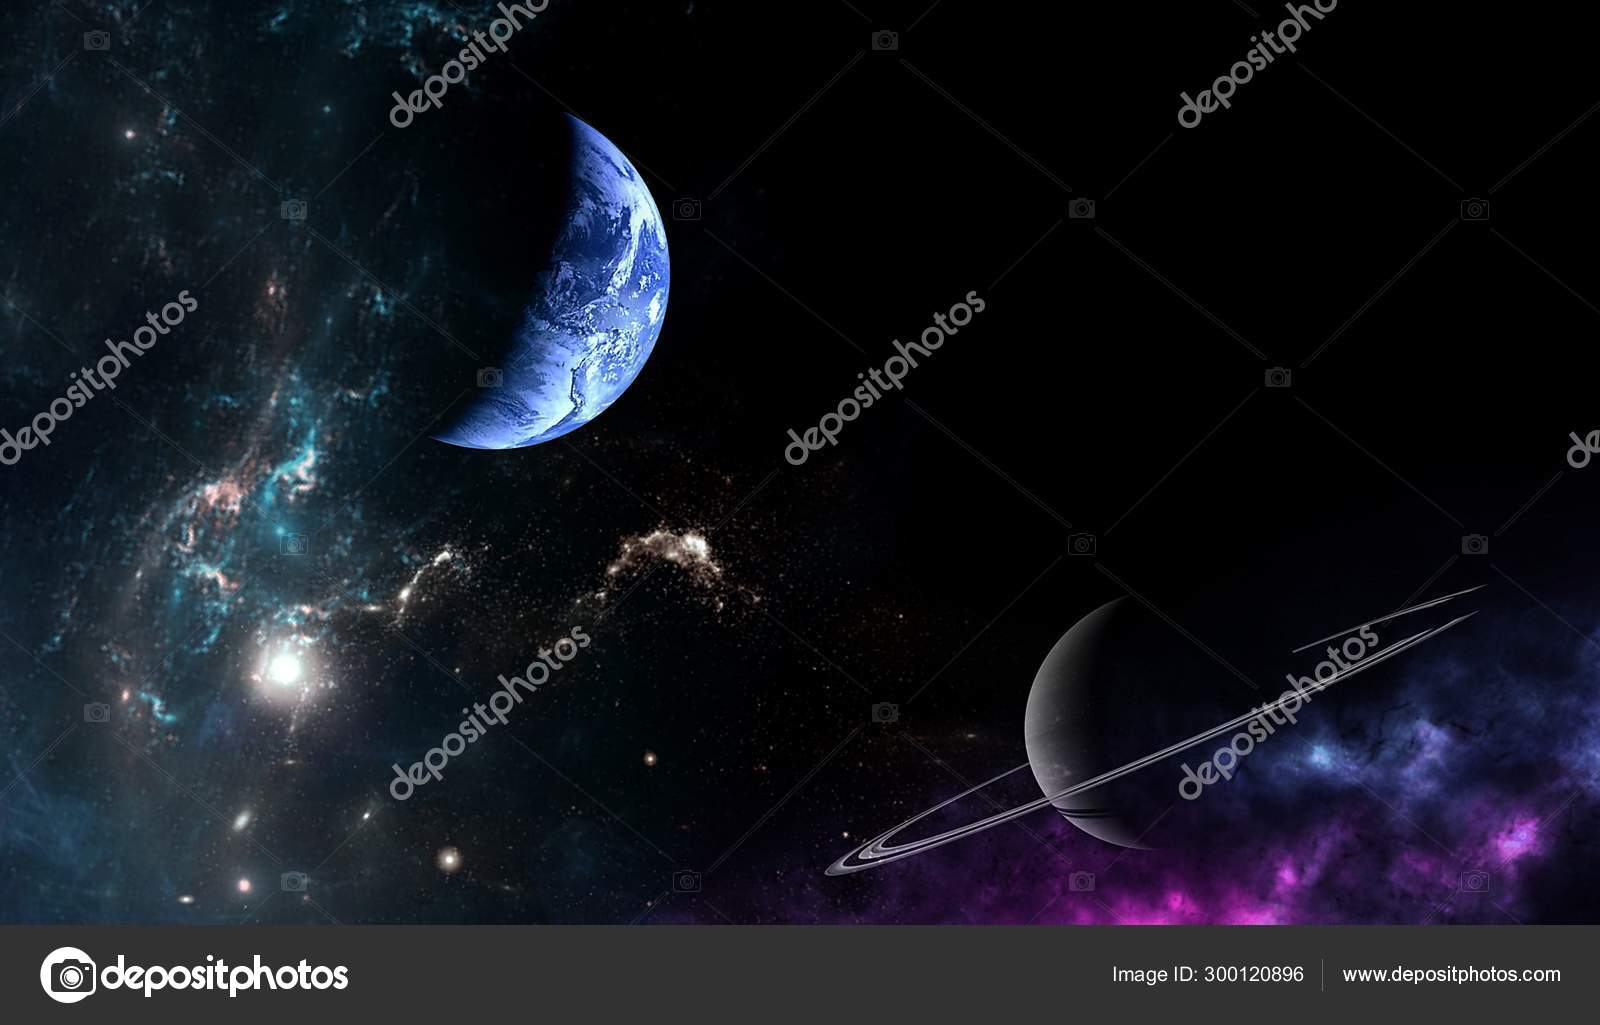 depositphotos 300120896 stock photo planets galaxy science fiction wallpaper